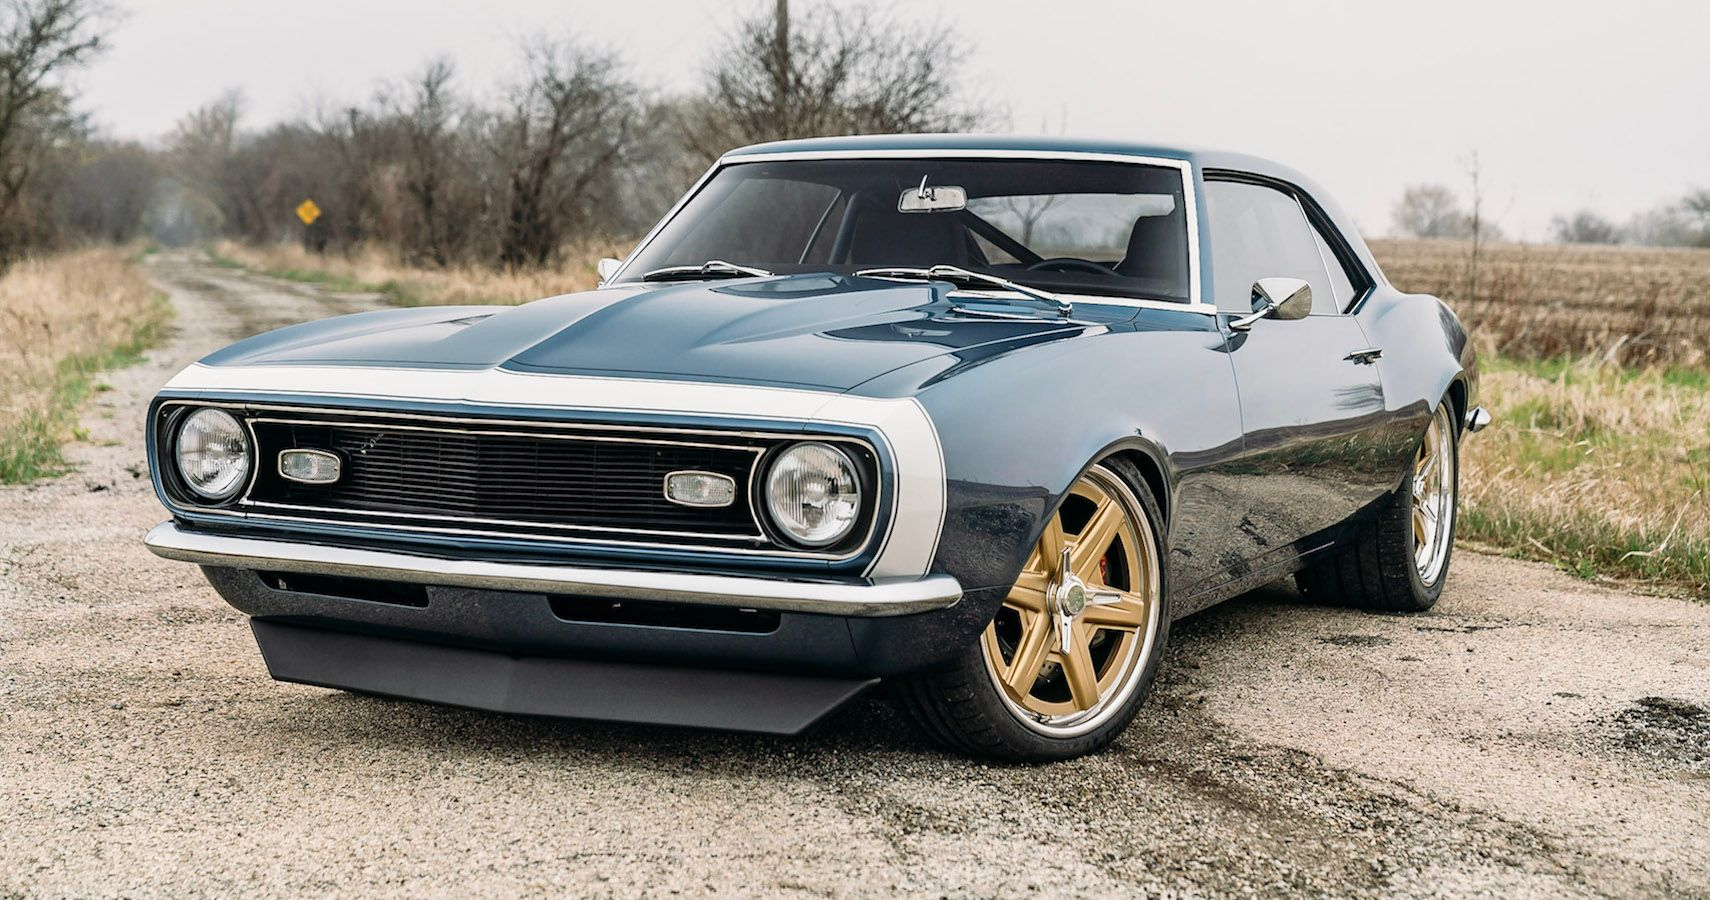 This Supercharged '68 Camaro Restomod Is A Thing Of Beauty